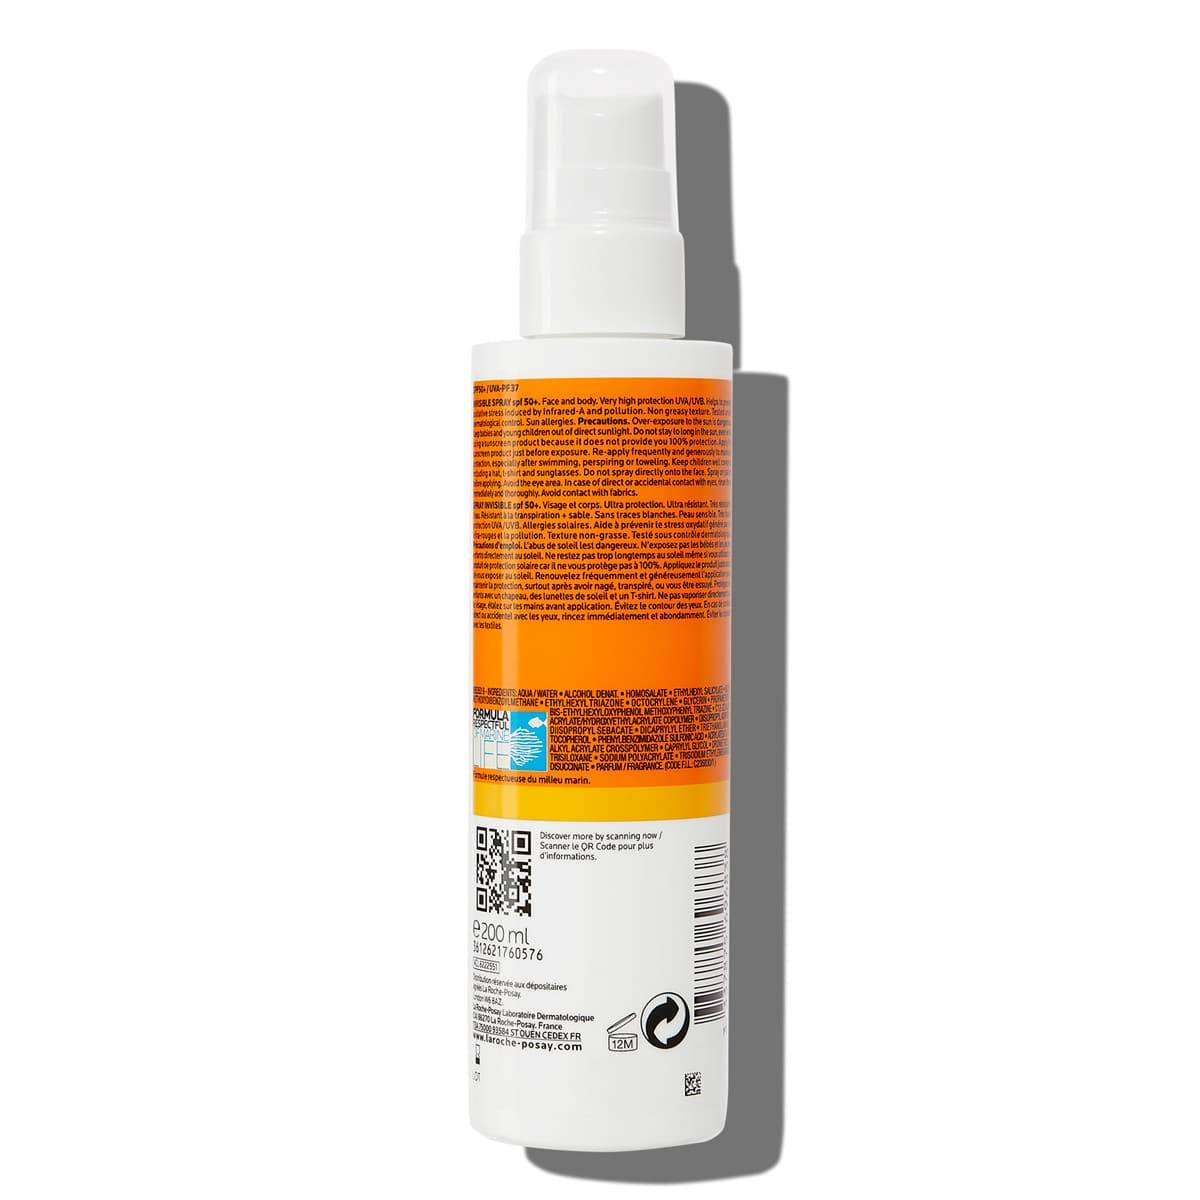 Retro confezione Anthelios Invisible Spray SPF50+